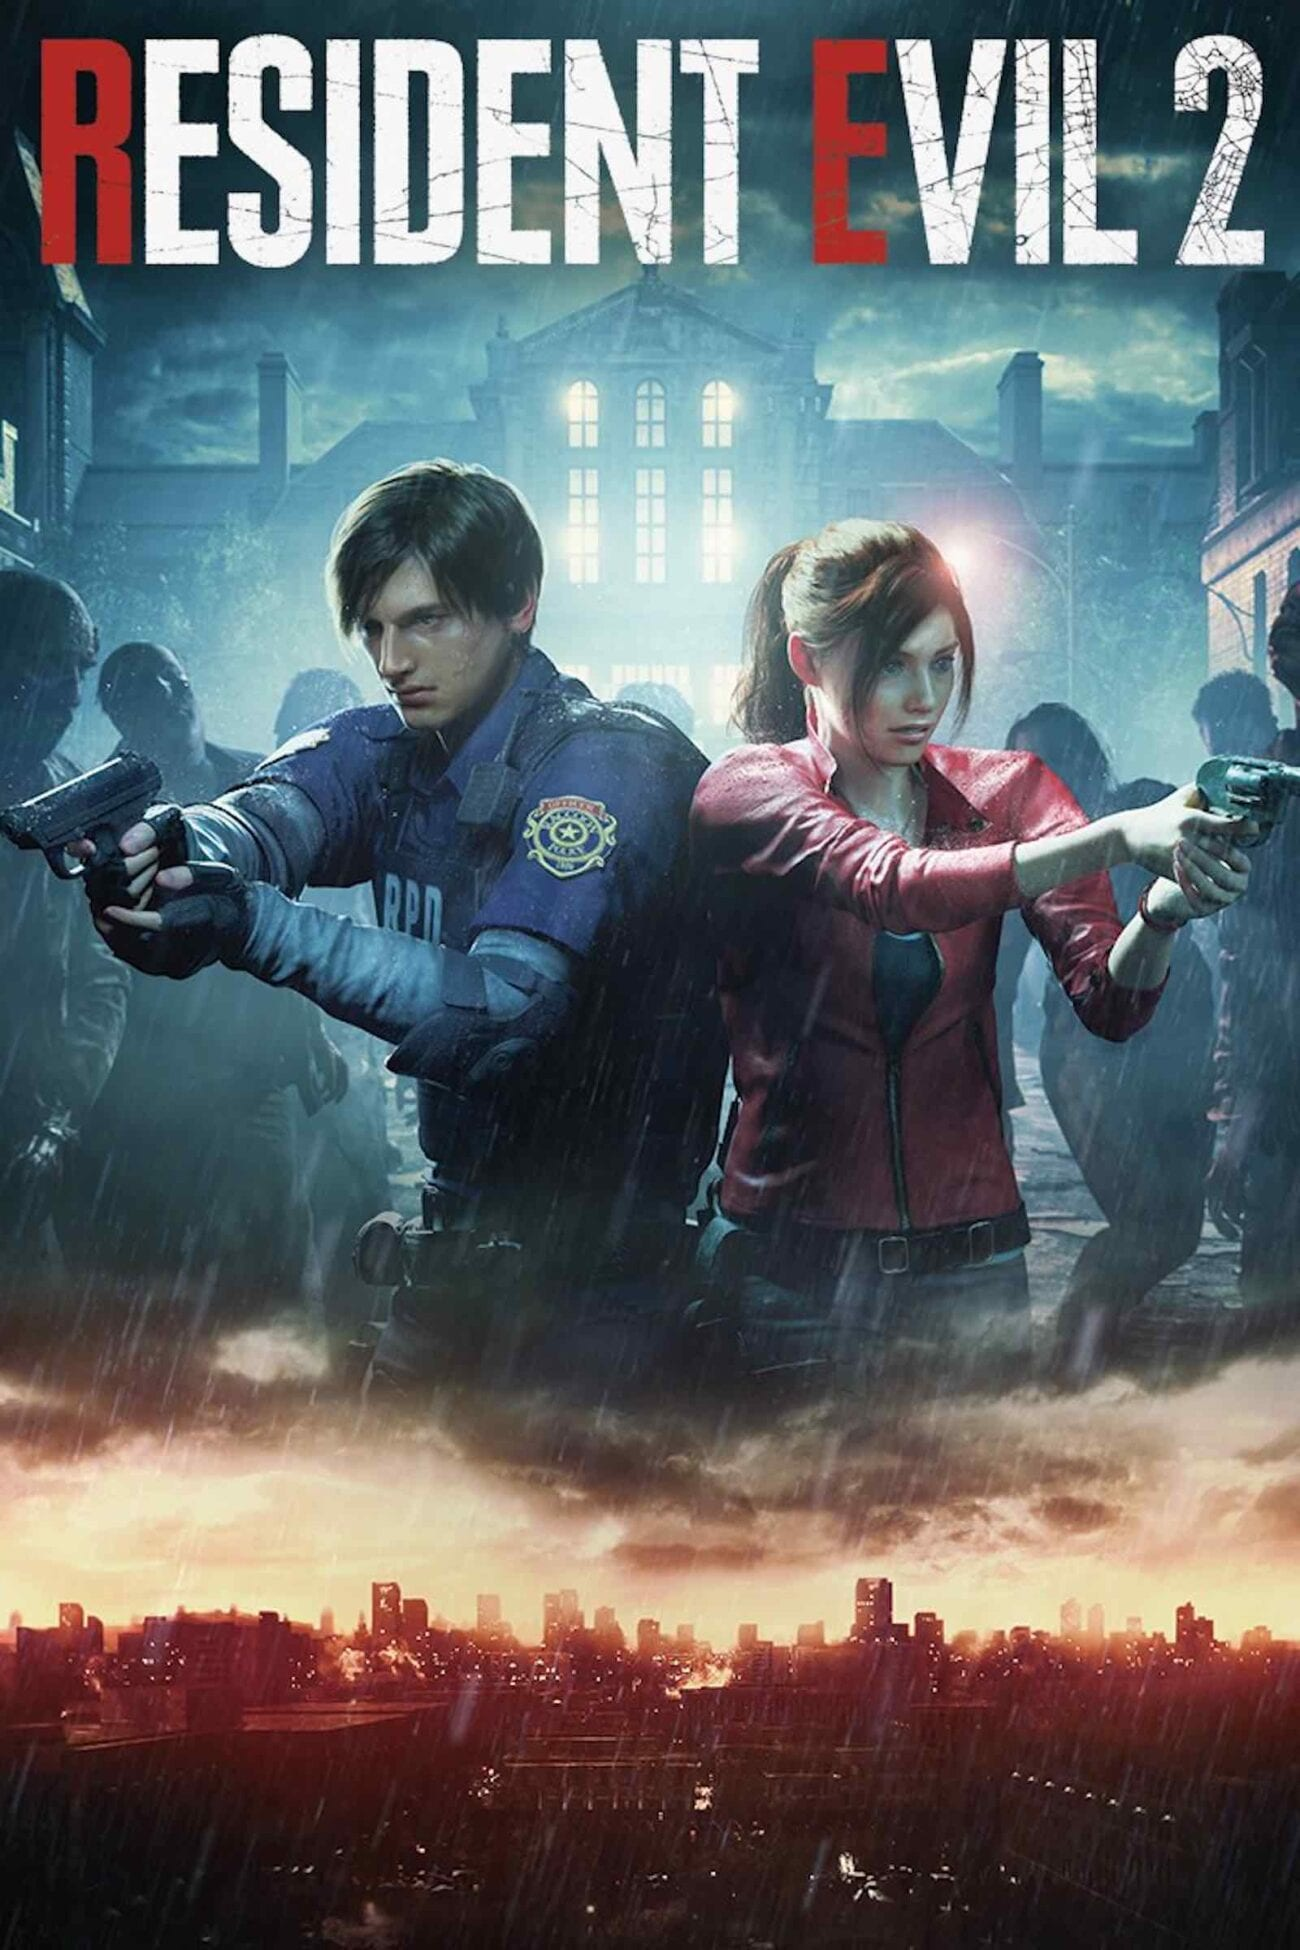 The popular 'Resident Evil' games are getting a live action adaptation on Netflix.Grab your shotguns and dive into the latest news about this adaptation.